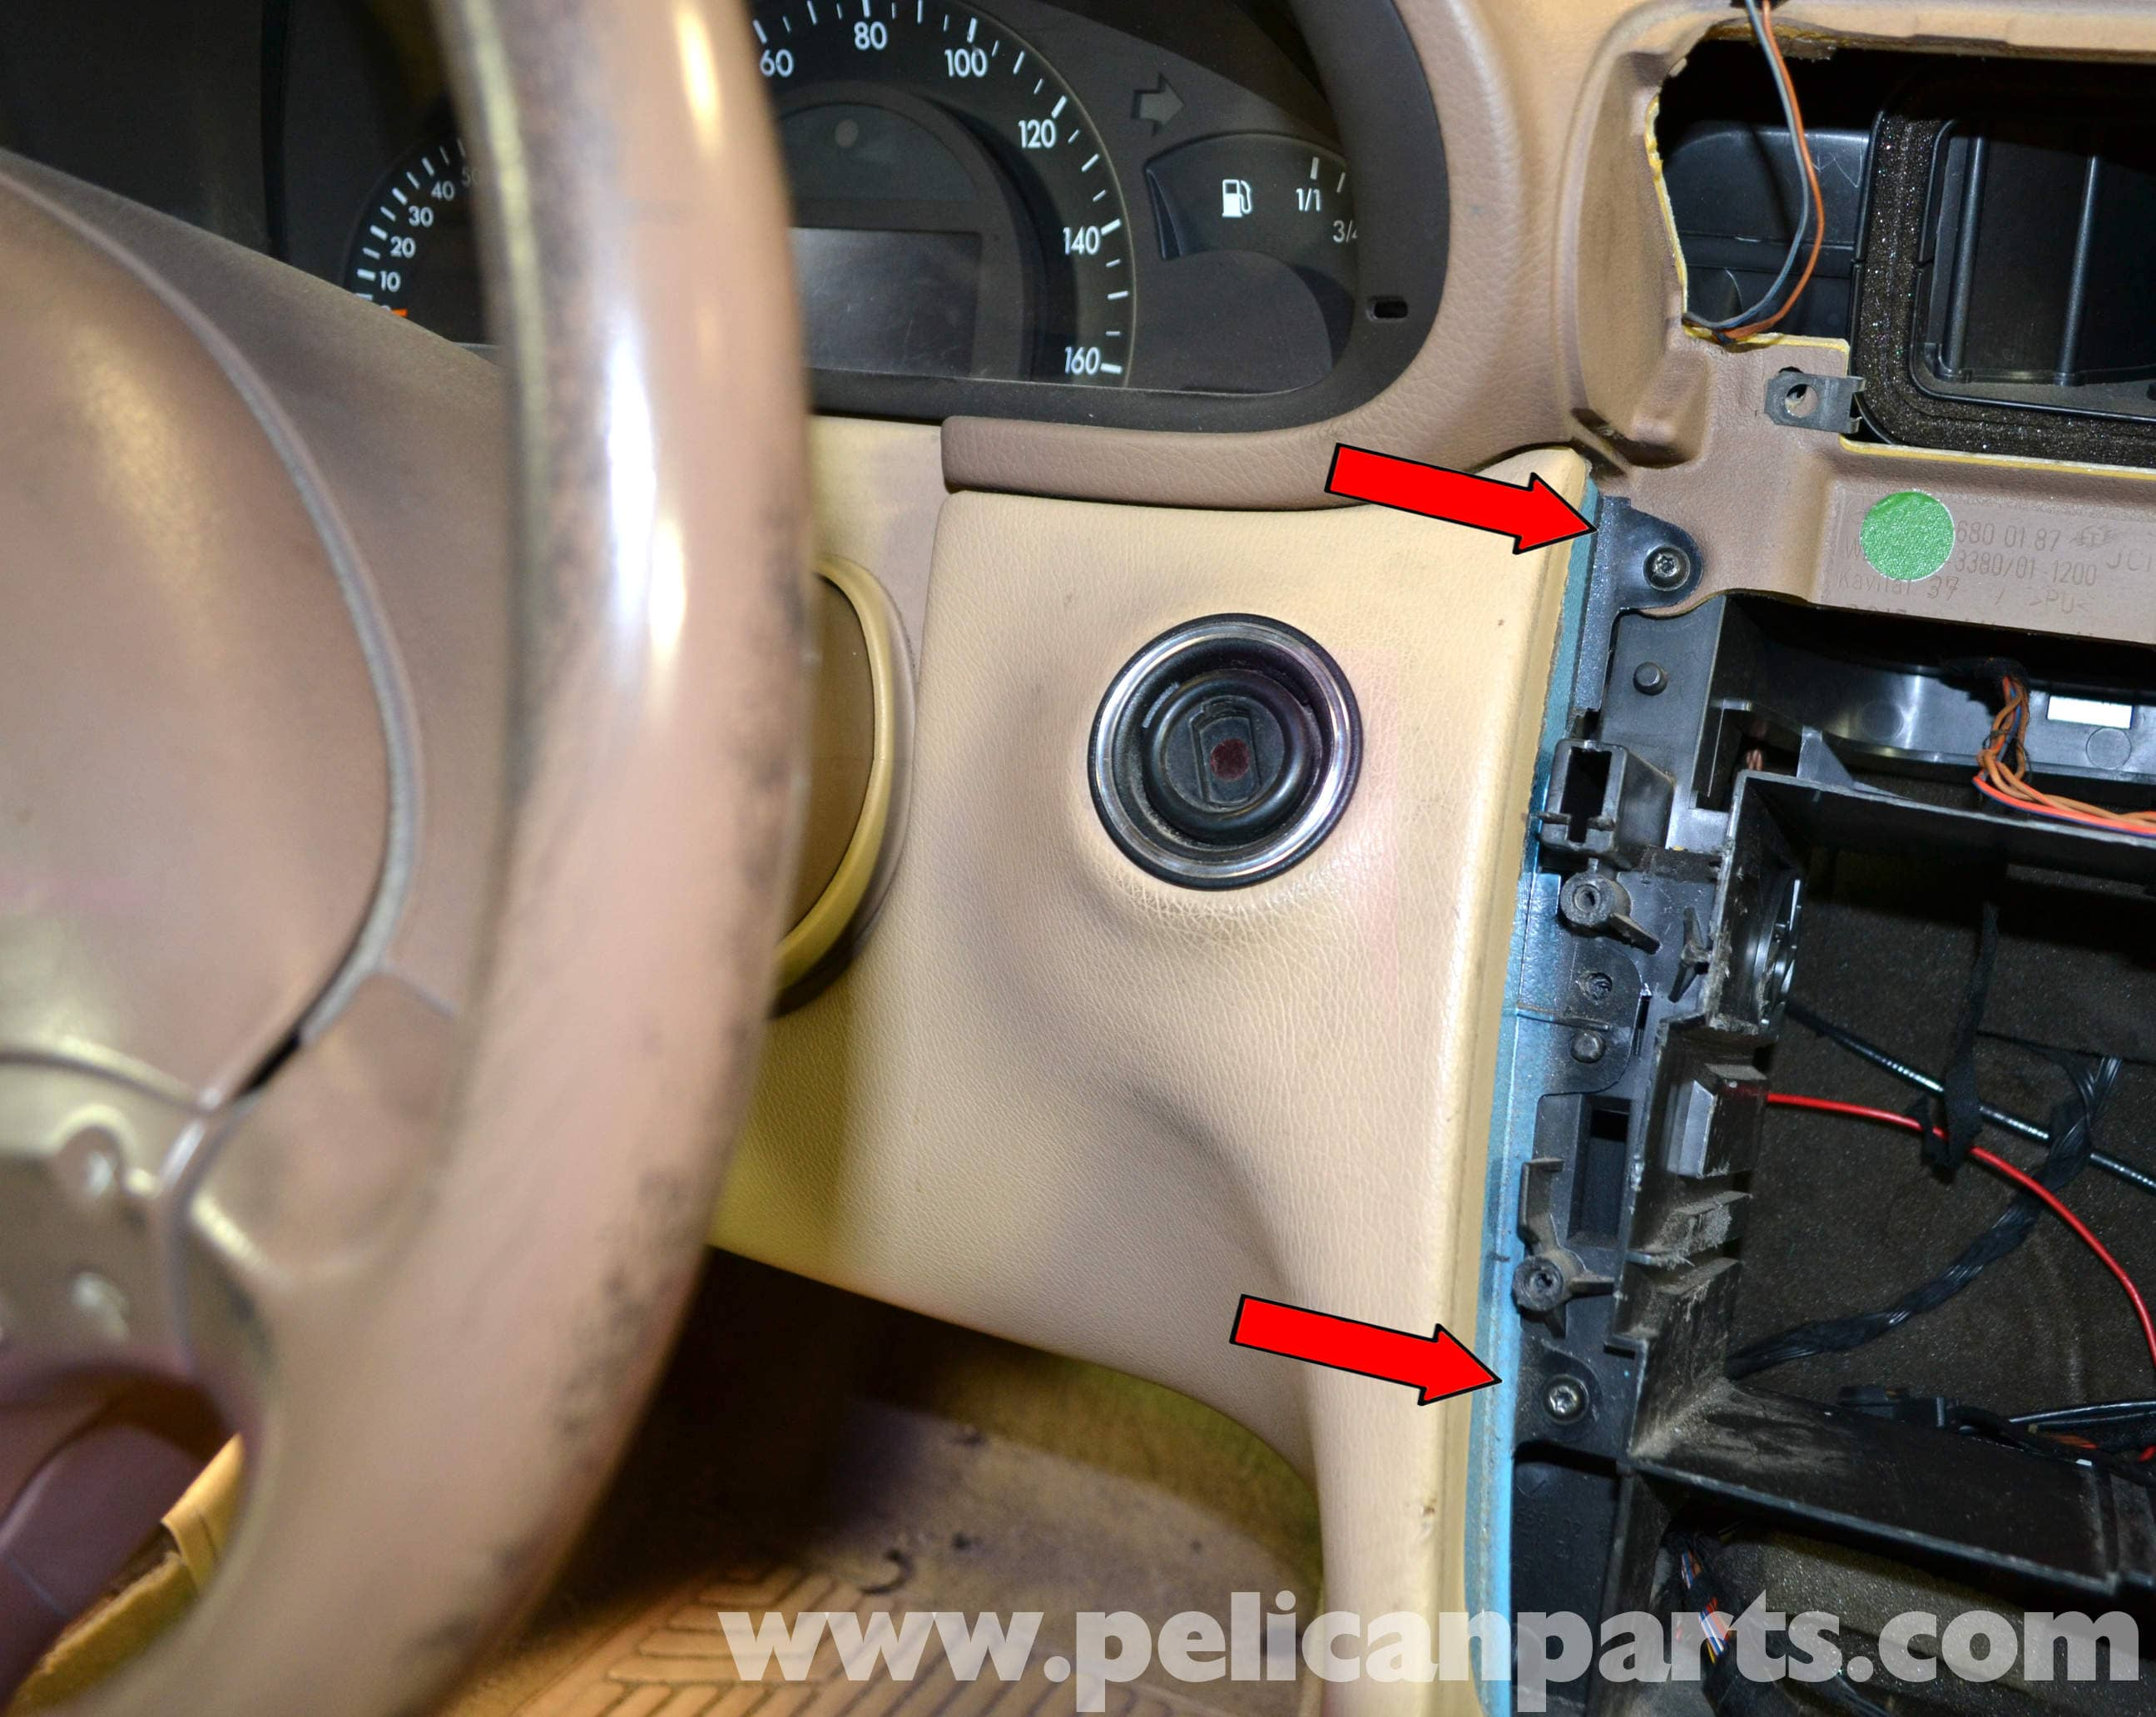 mercedes w124 e320 wiring diagram    mercedes    benz w203 lower driver side dash removal  2001     mercedes    benz w203 lower driver side dash removal  2001